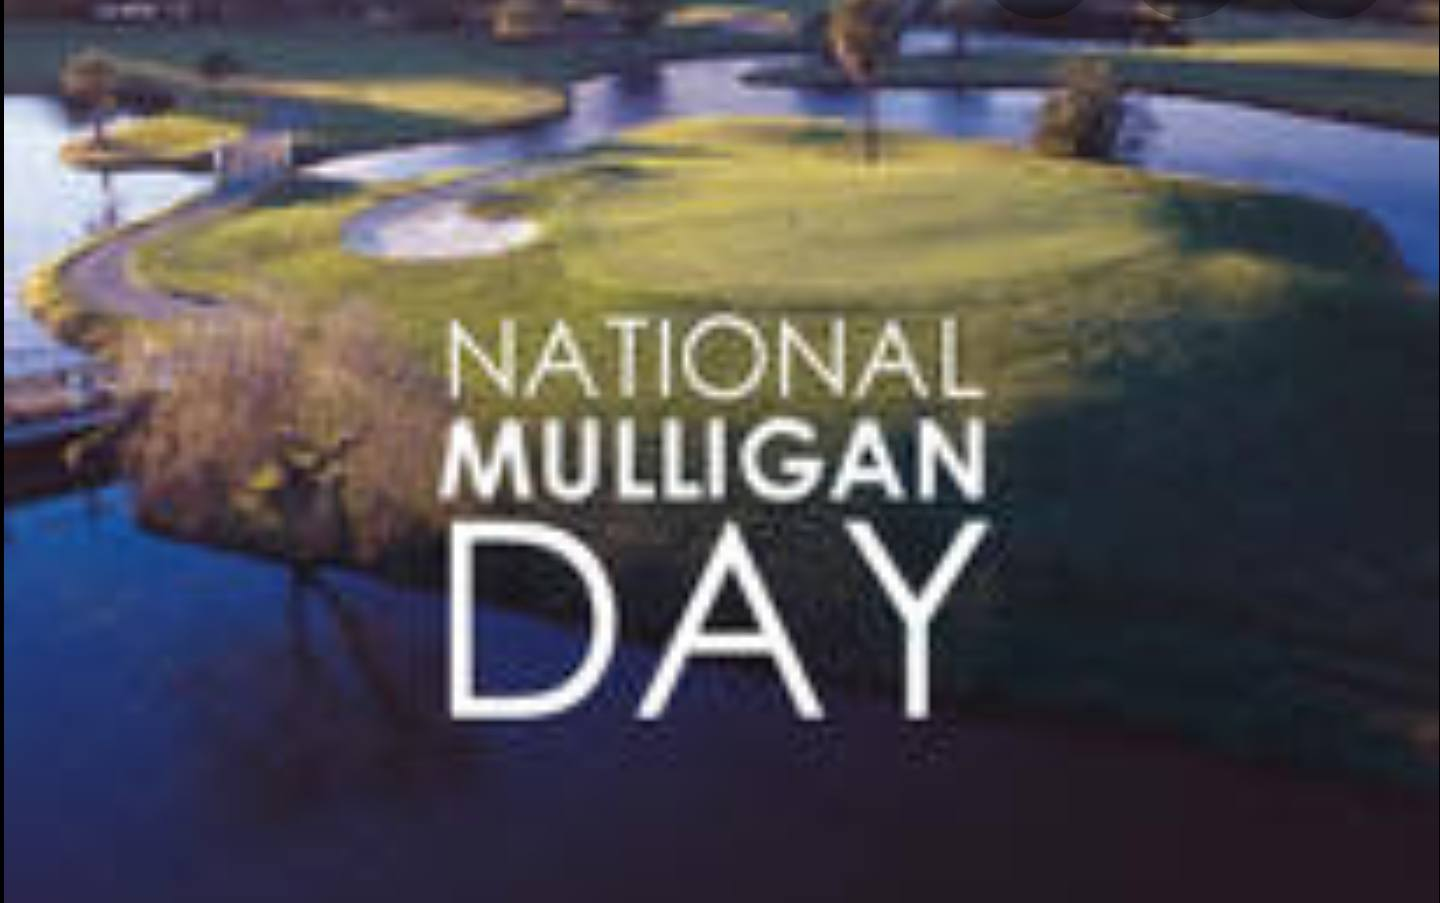 National Mulligan Day Wishes Sweet Images